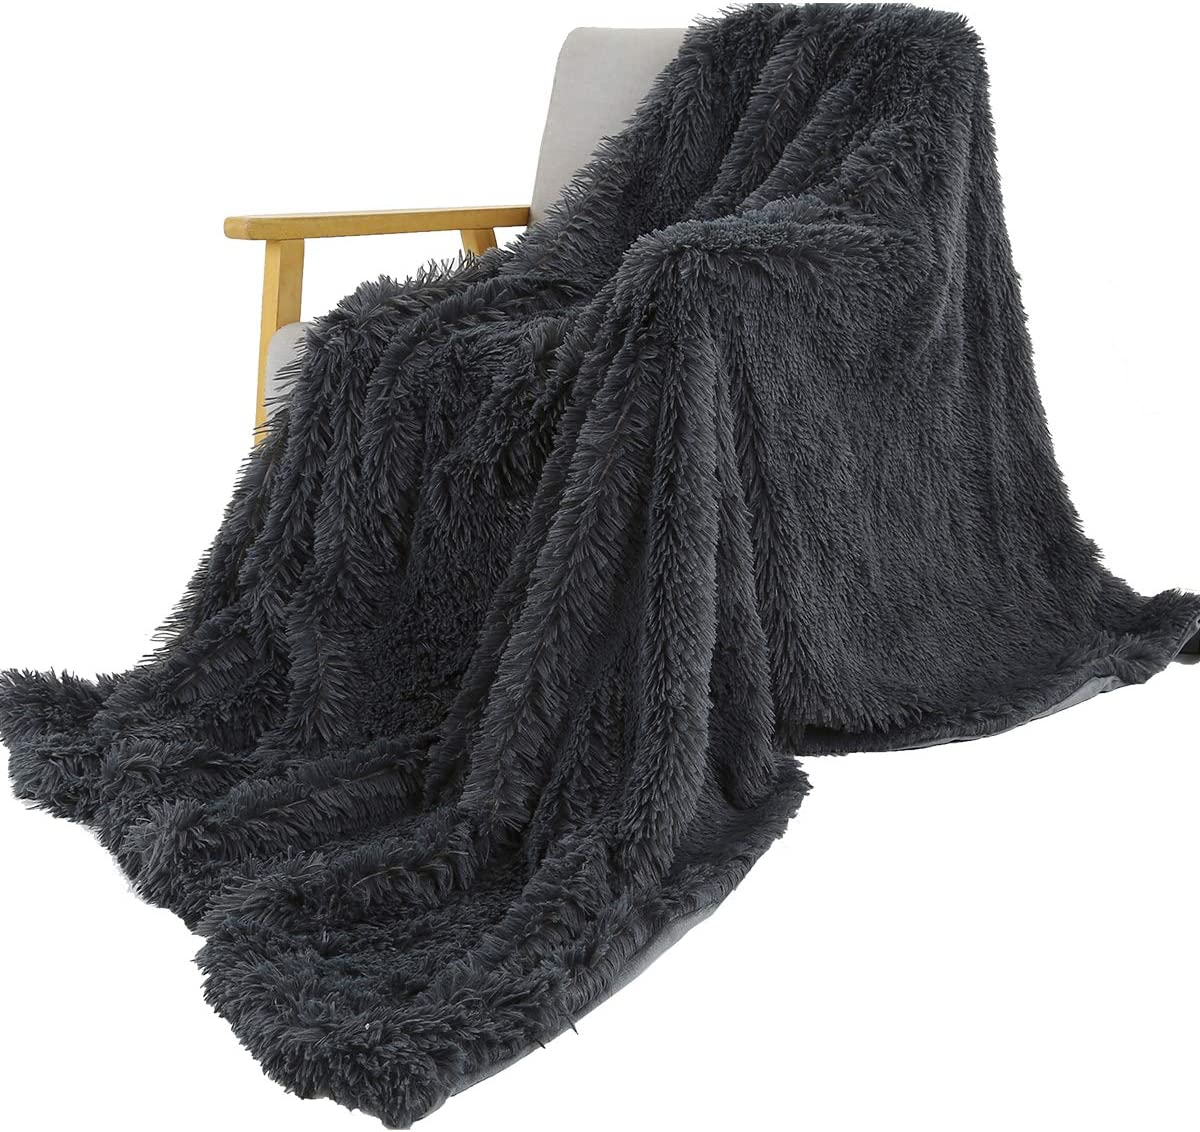 Fluffy Comfortable Throws Blankets for Bed Couch Kids SatisInside USA Luxurious Plush Faux Fur Throws Bed Blankets ,Black 50 x 62 Extra Soft Cozy Warm